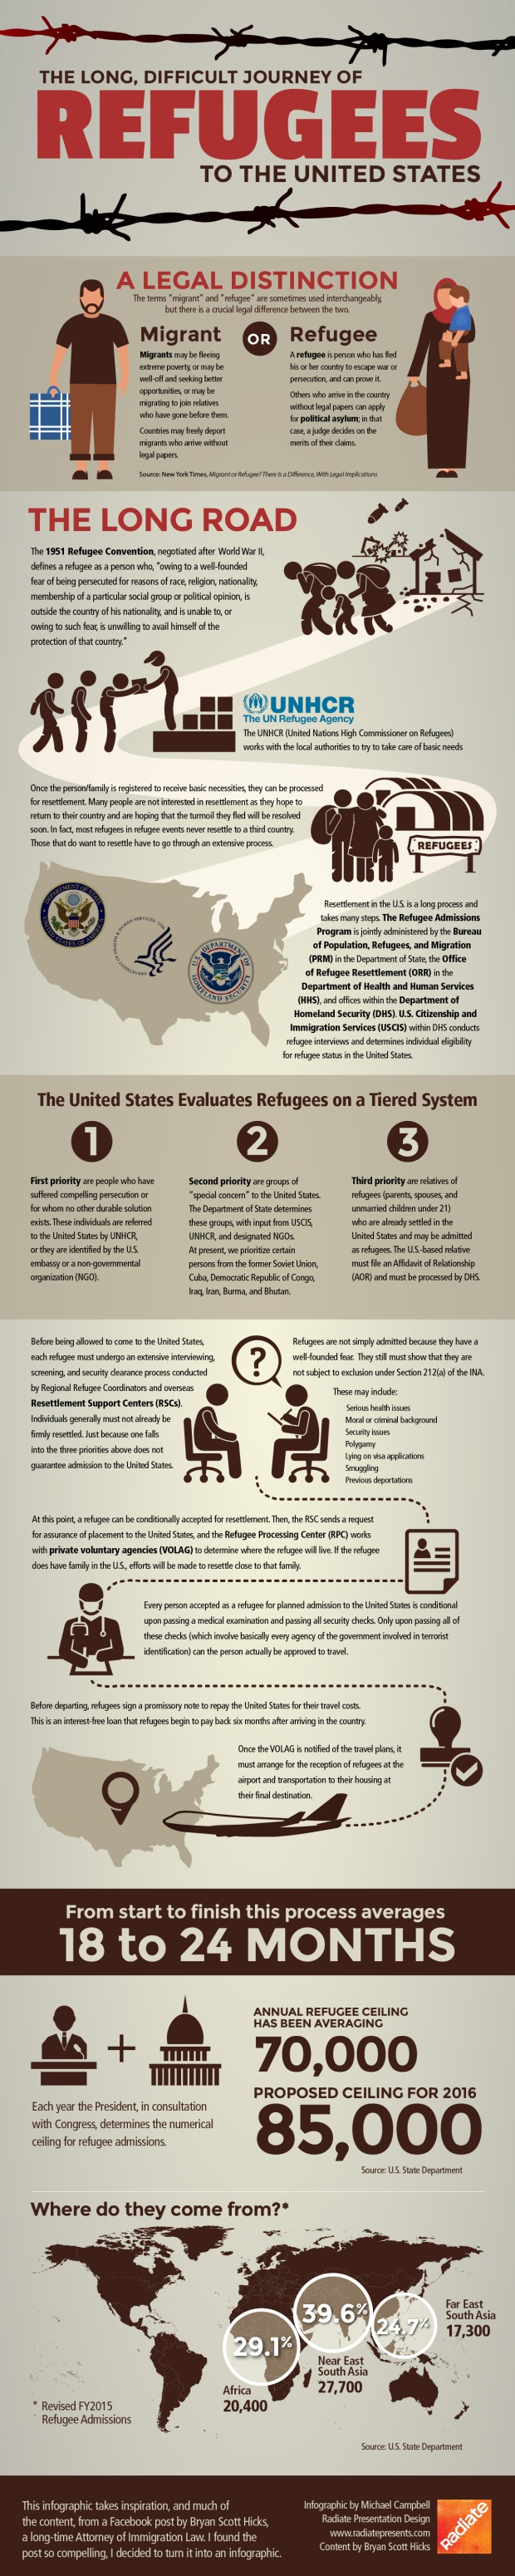 infographic re  refugees to the US.jpg